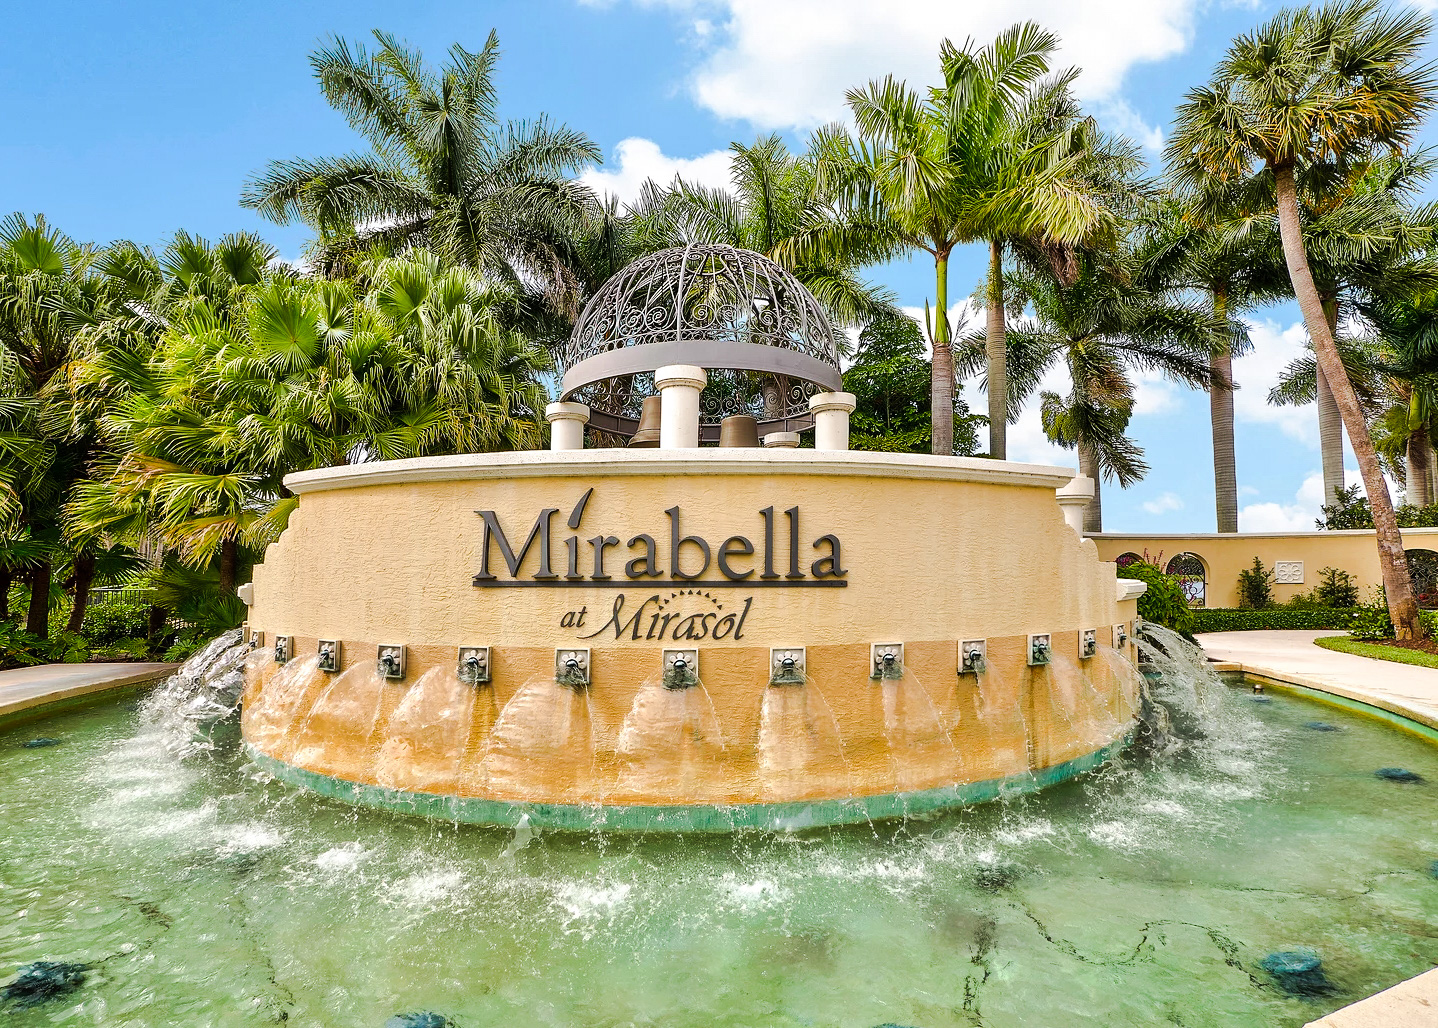 Mirabella Homes for Sale in Palm Beach Gardens, FL 33418 community image